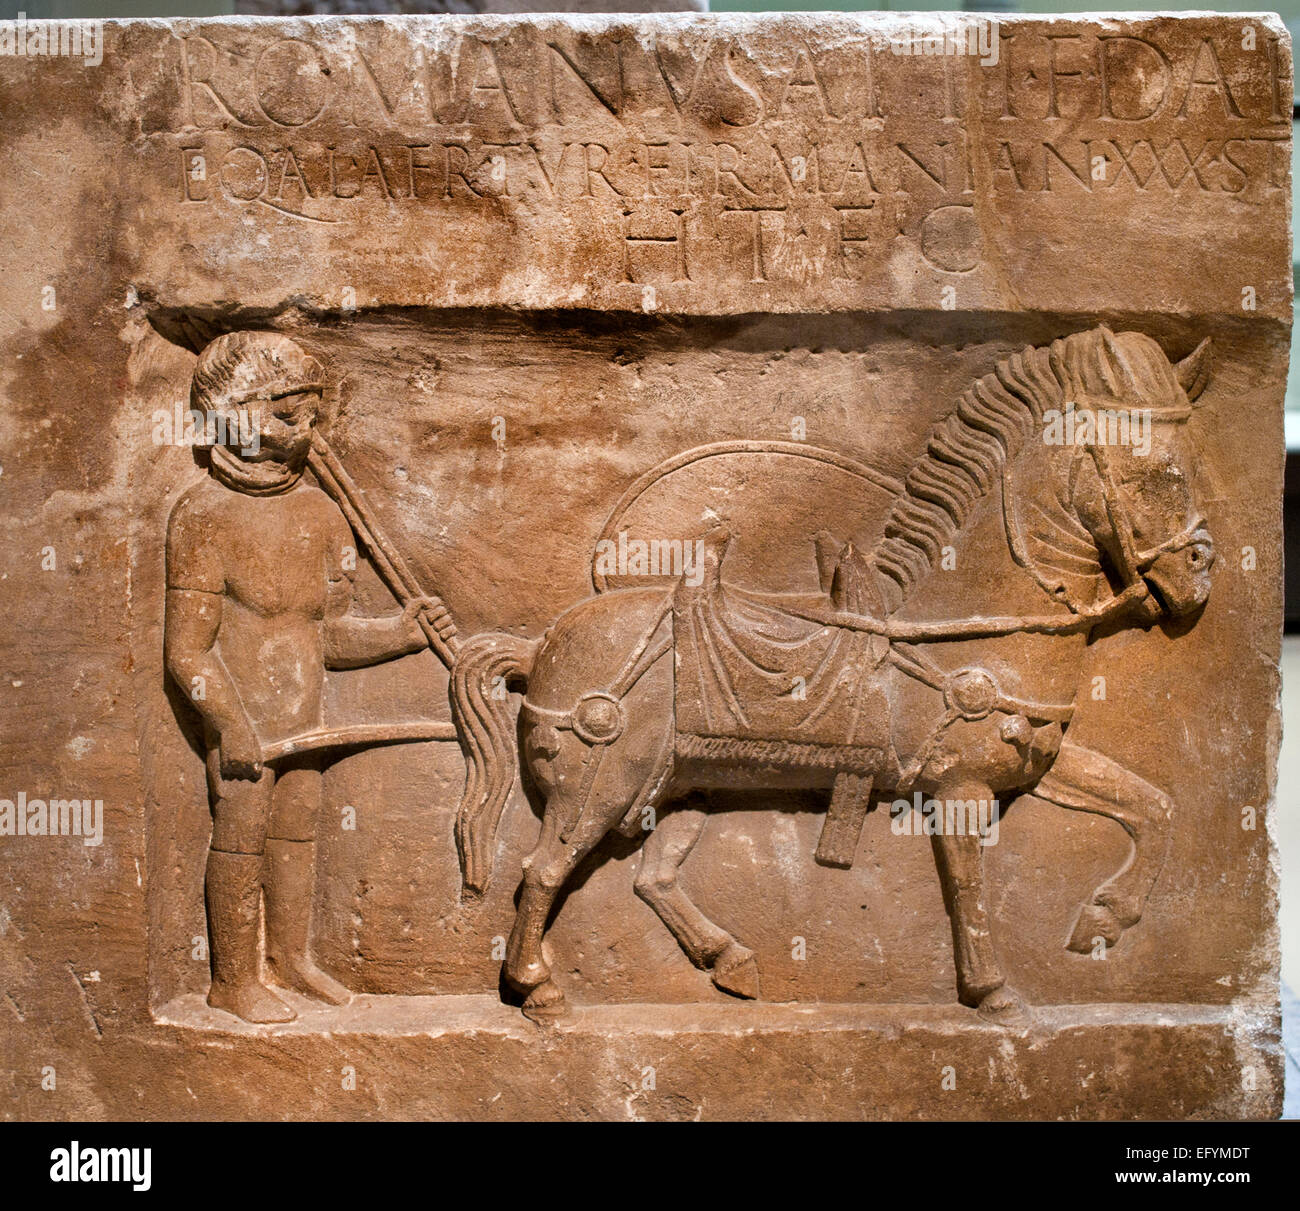 Grave stone of the cavalryman Lucius Romanus, 80-90 AD Roman Germanic Museum Cologne Germany - Stock Image